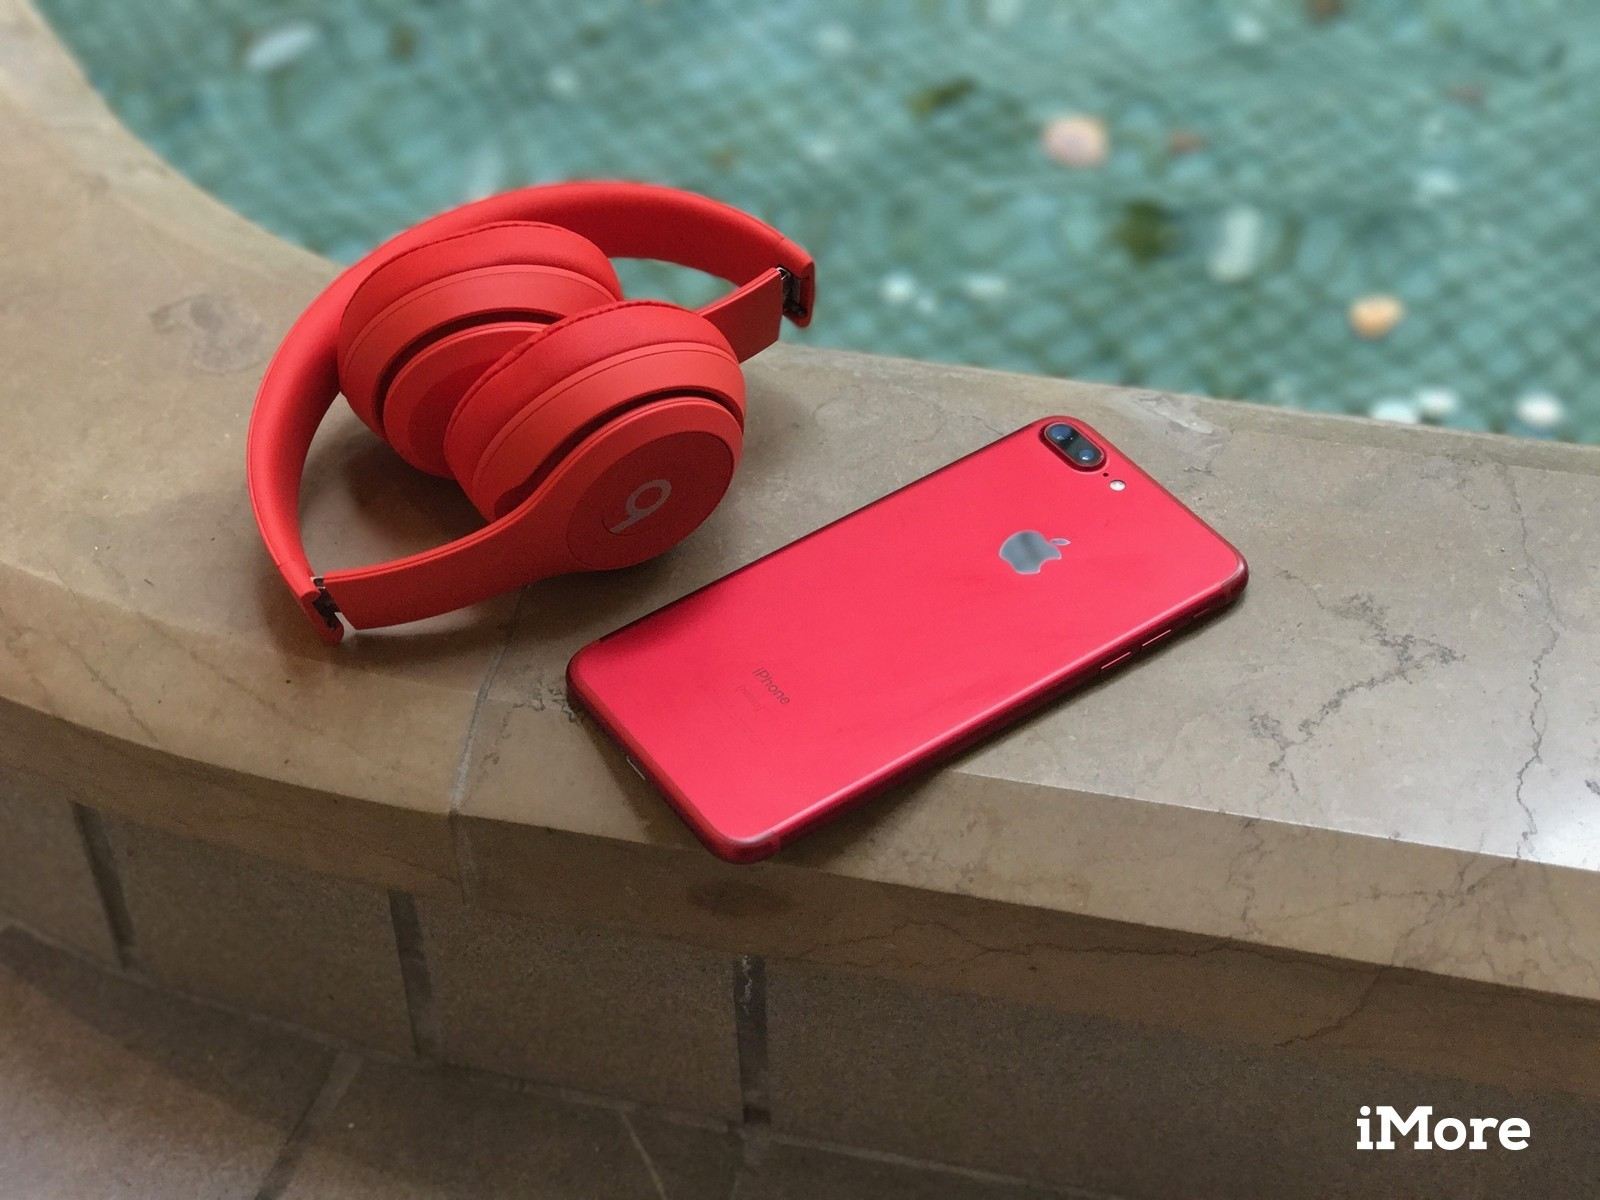 The Red Iphone 8 And Iphone 8 Plus Look Absolutely Best